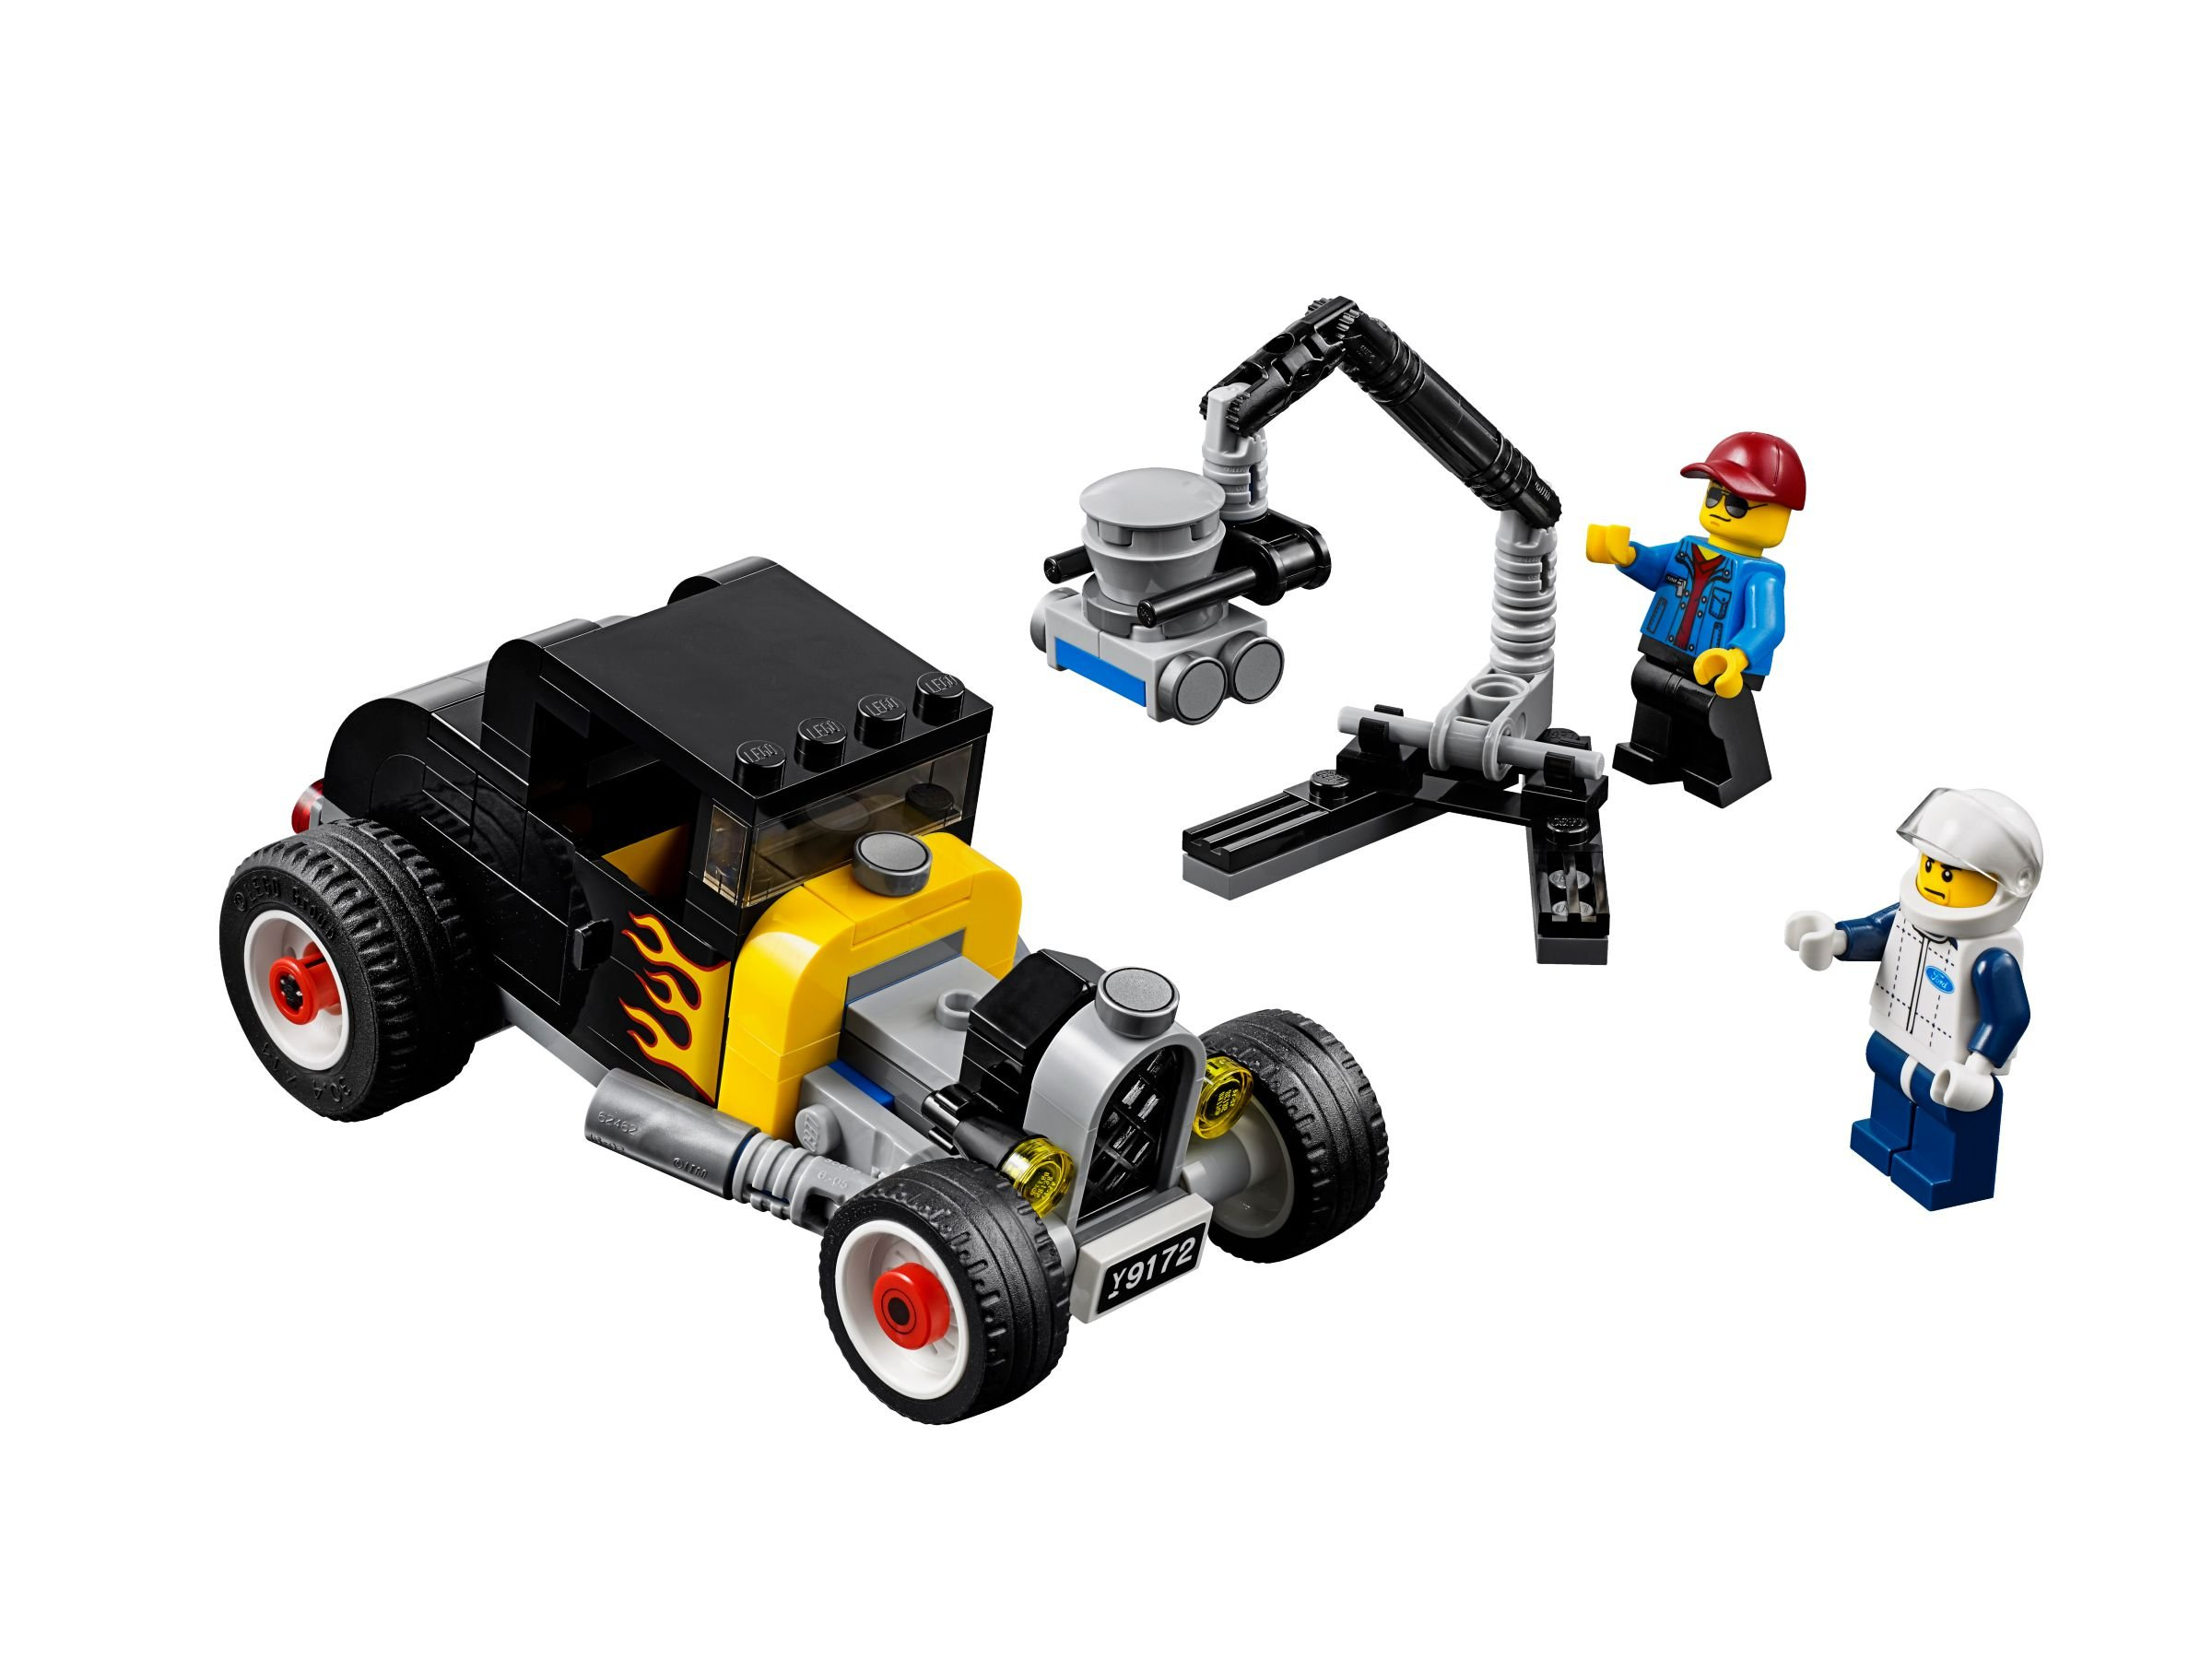 LEGO Speed Champions 75875 Ford F-150 Raptor & Ford Model A Hot Rod LEGO_75875_alt5.jpg